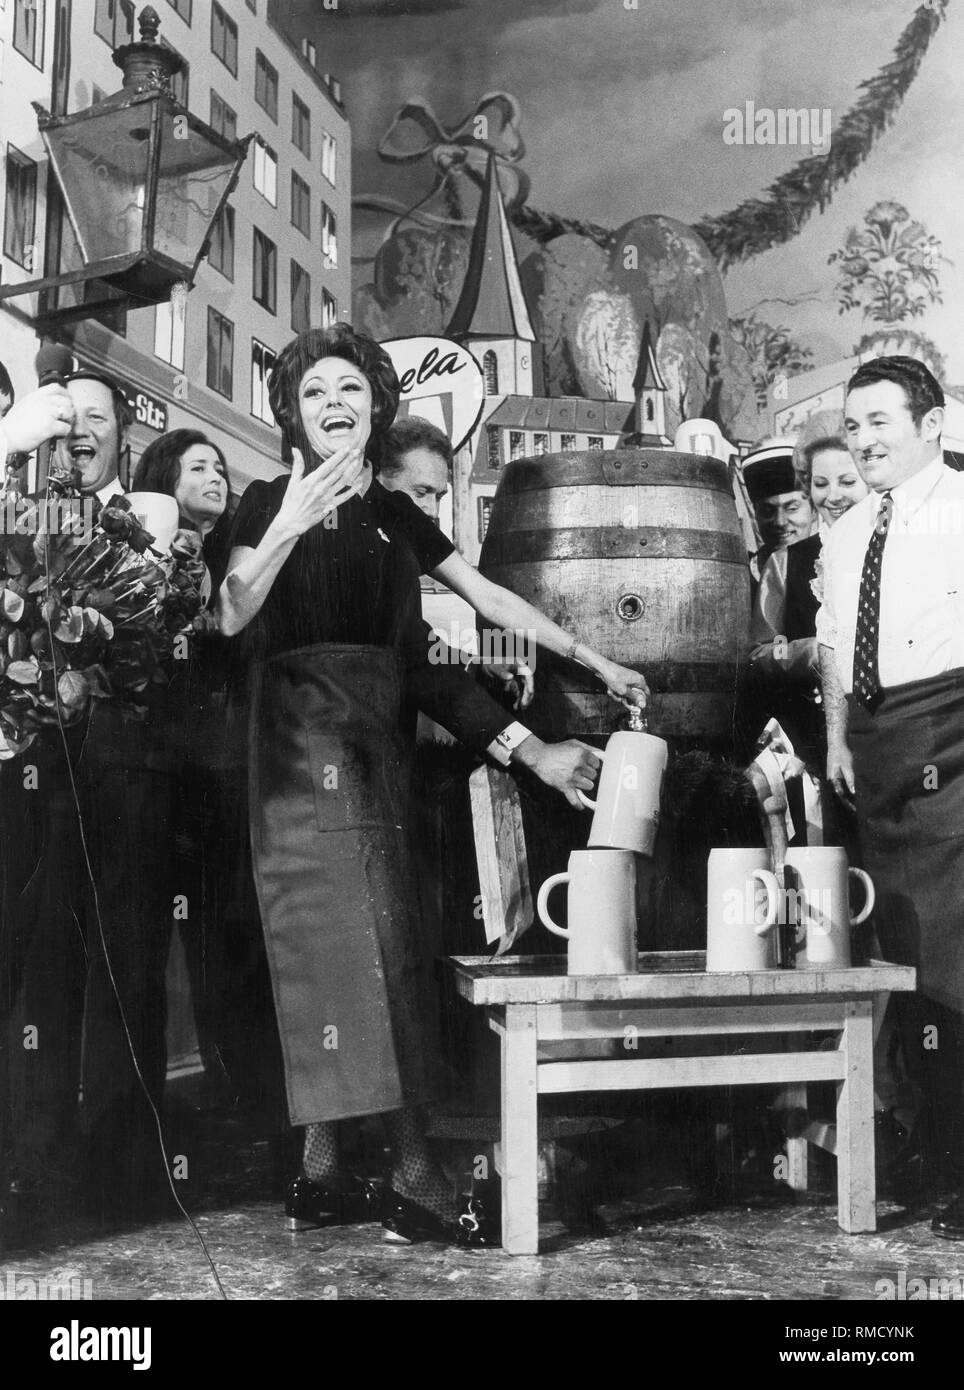 Caterina Valente, a German actress and entertainer, tapping the strong beer. - Stock Image